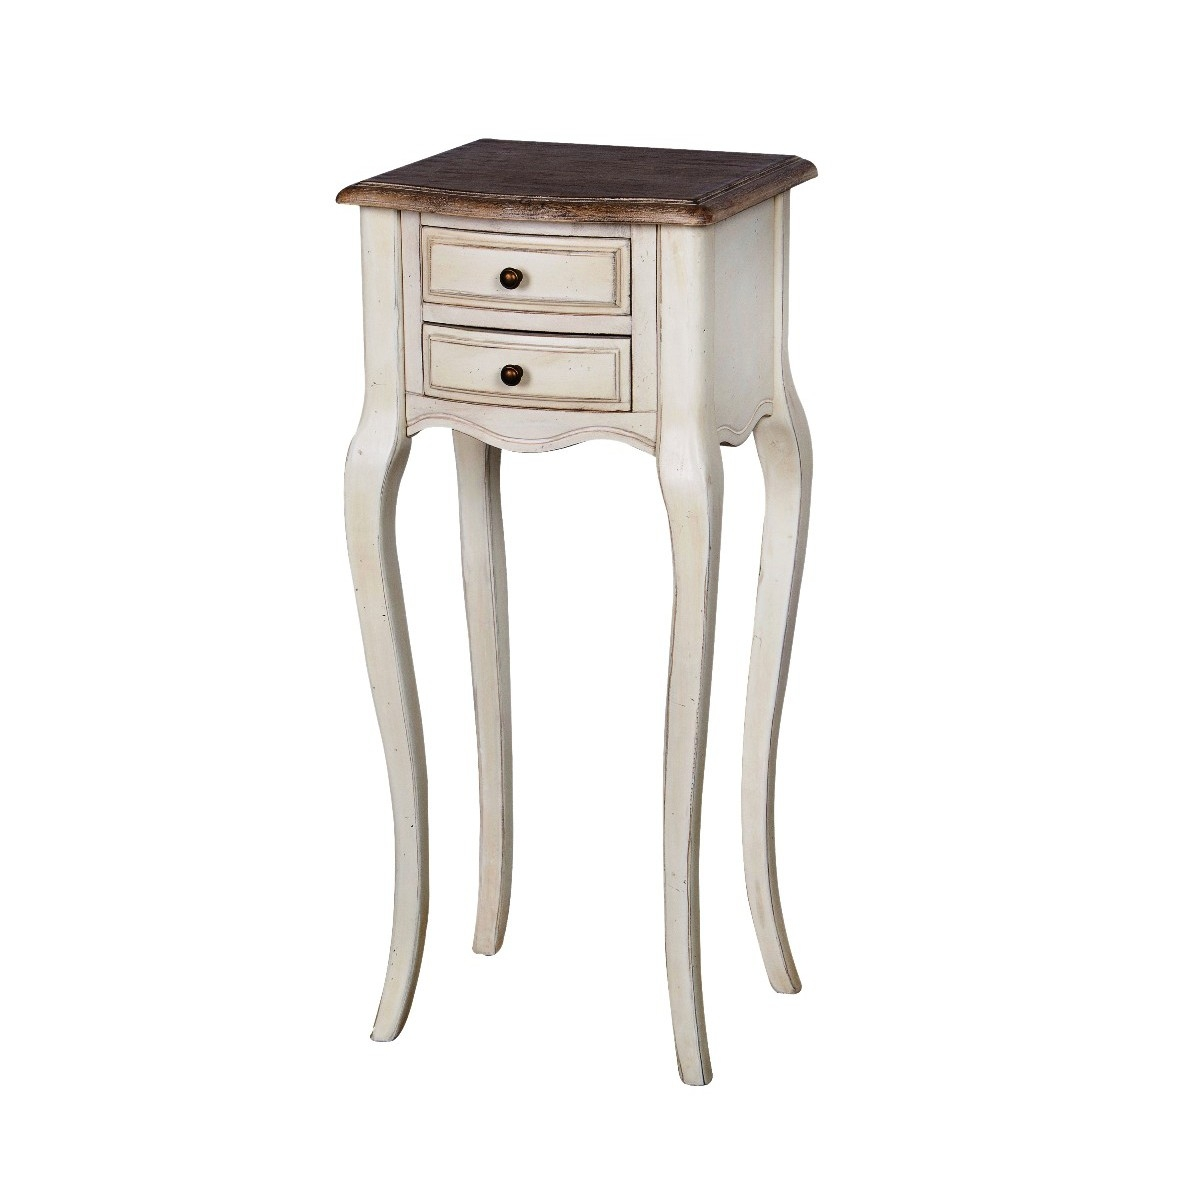 Cabinet din lemn de cauciuc si furnir, cu 2 sertare Limena LI825 Ivory / Light Brown, l34xA30xH76 cm imagine